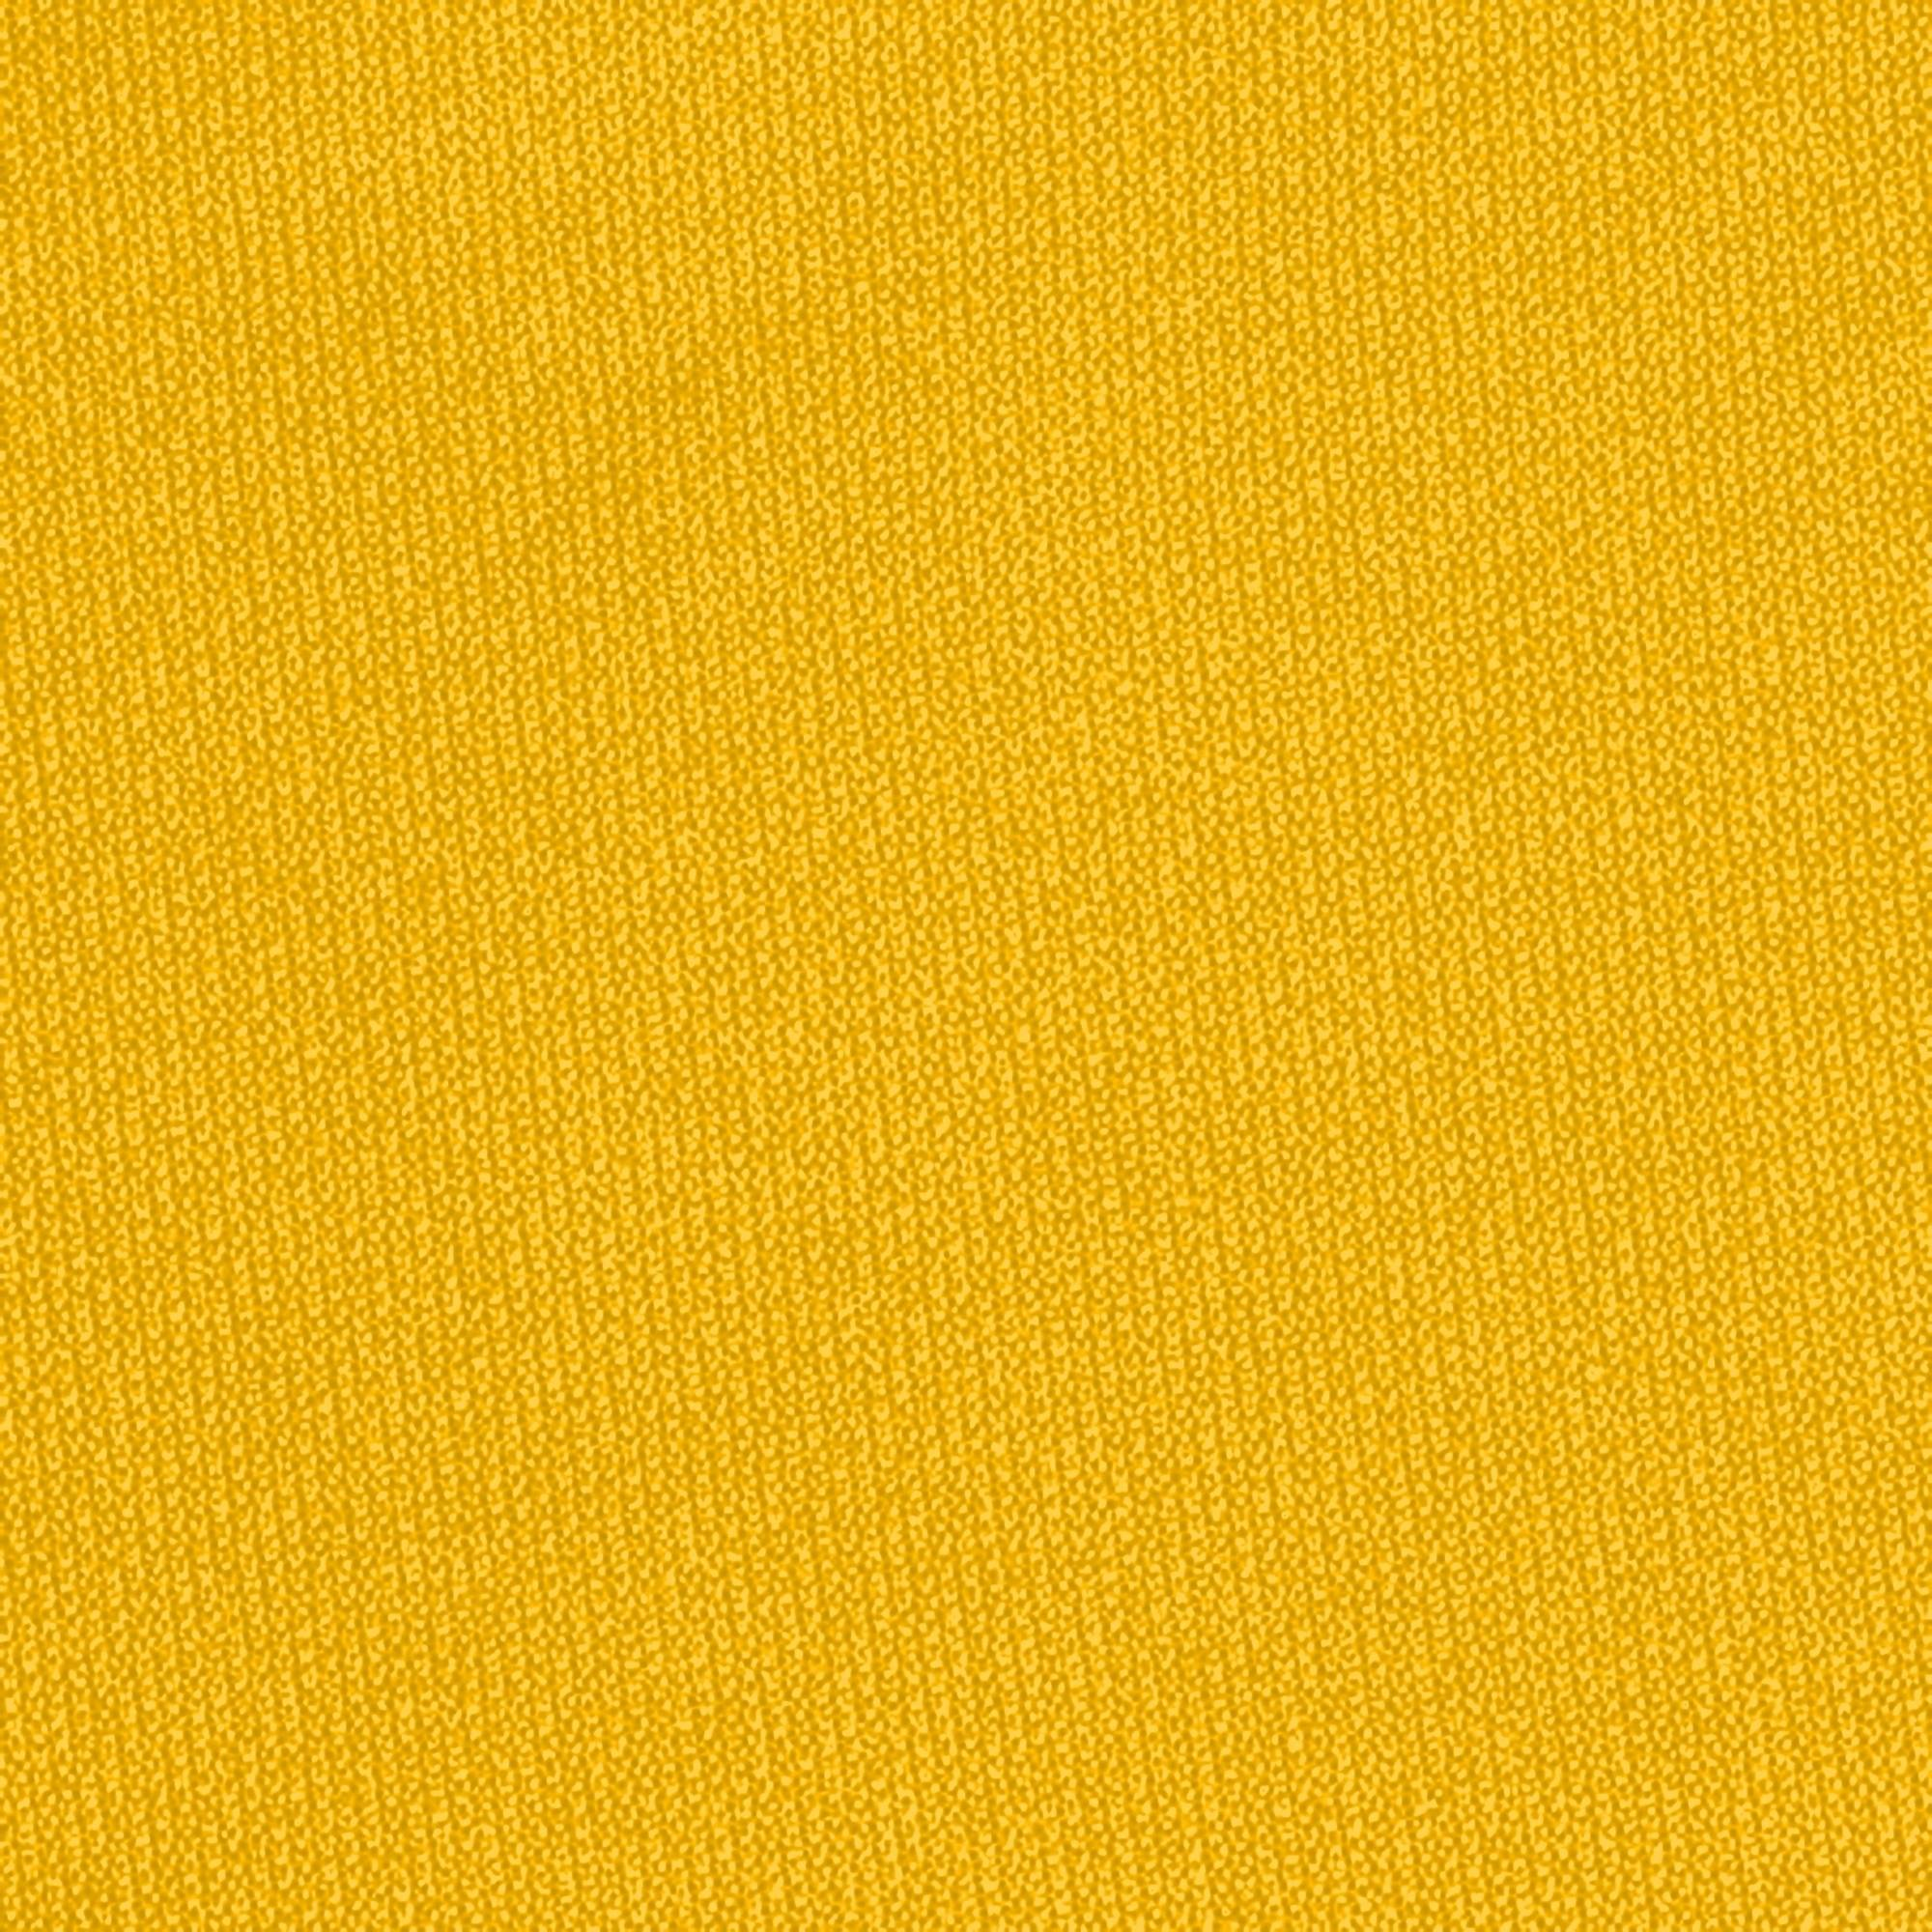 SHASON TEXTILE (3 Yards cut) POLY KNIT CHINZ FABRIC, YELLOW